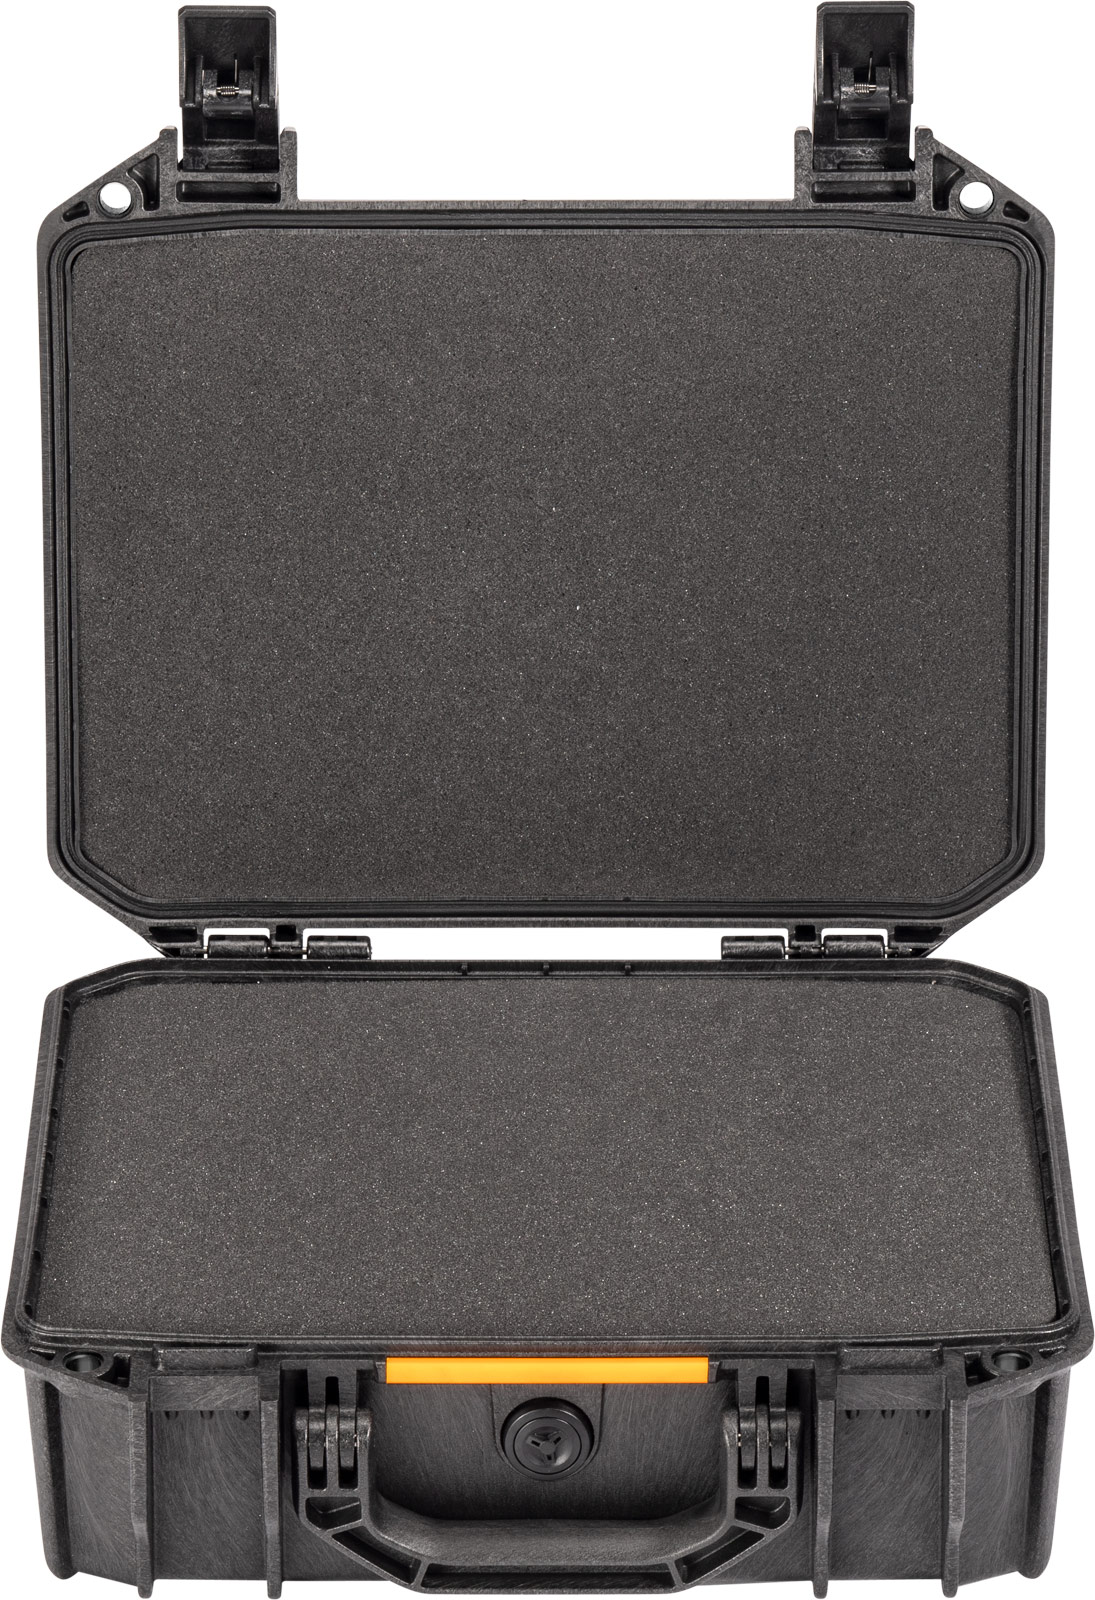 buy pelican vault v550 shop watertight case